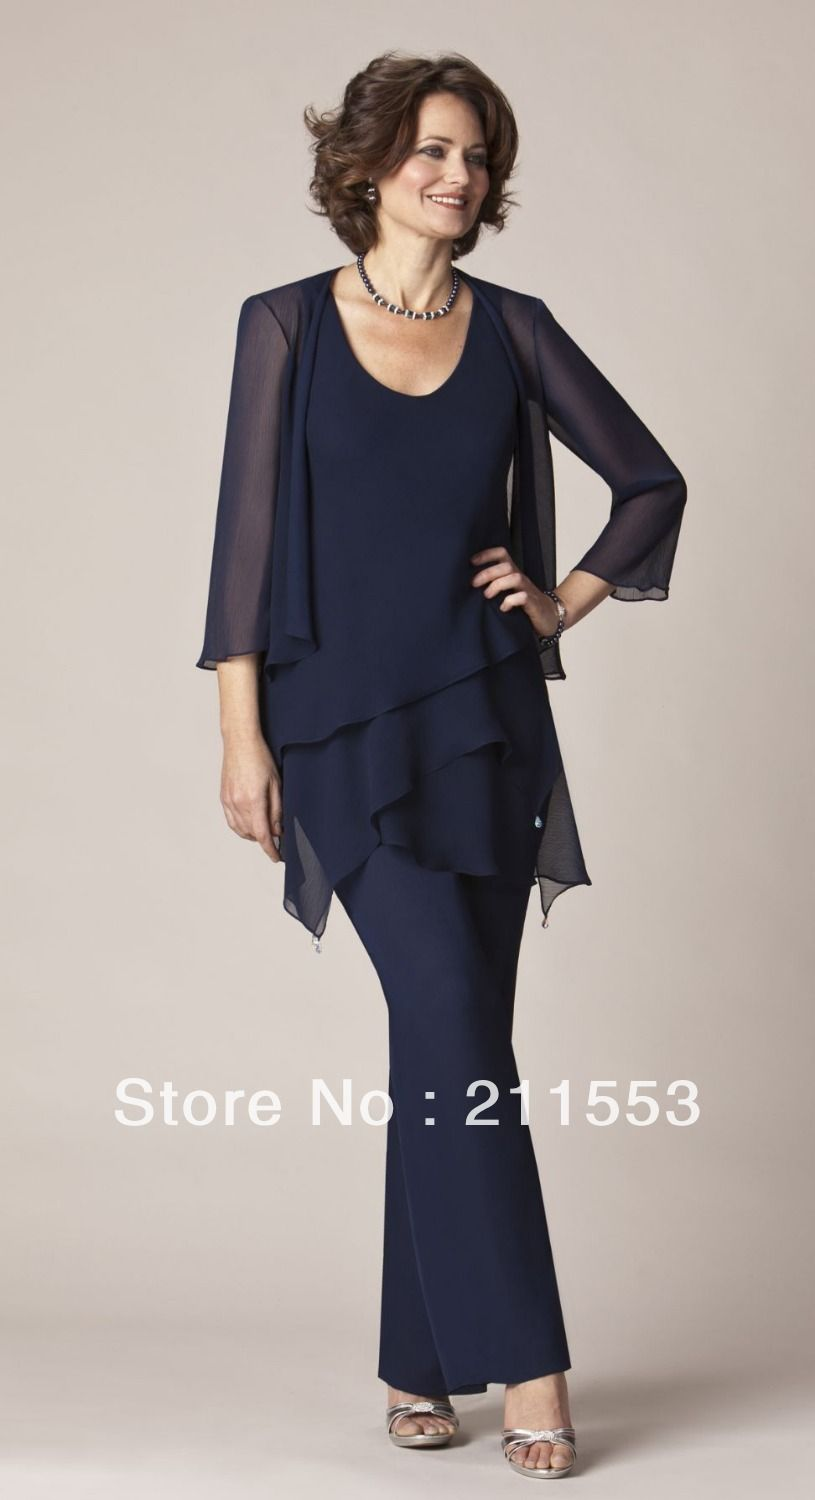 Wholesale chiffon dark navy mother of the bride pant suits for Suit dresses for weddings